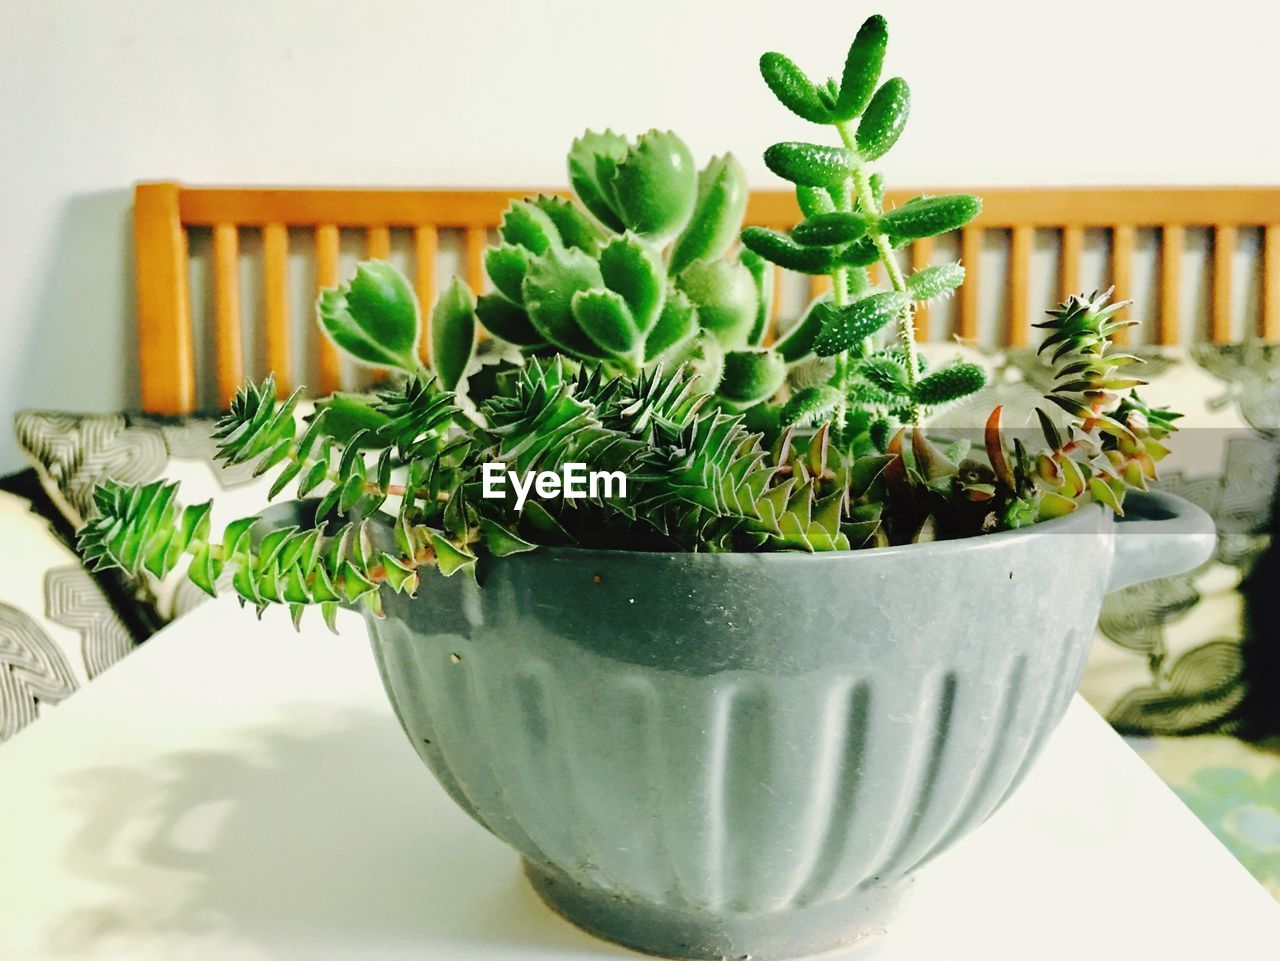 green color, potted plant, growth, plant, indoors, close-up, succulent plant, no people, nature, table, cactus, flower pot, day, beauty in nature, selective focus, plant part, botany, leaf, container, houseplant